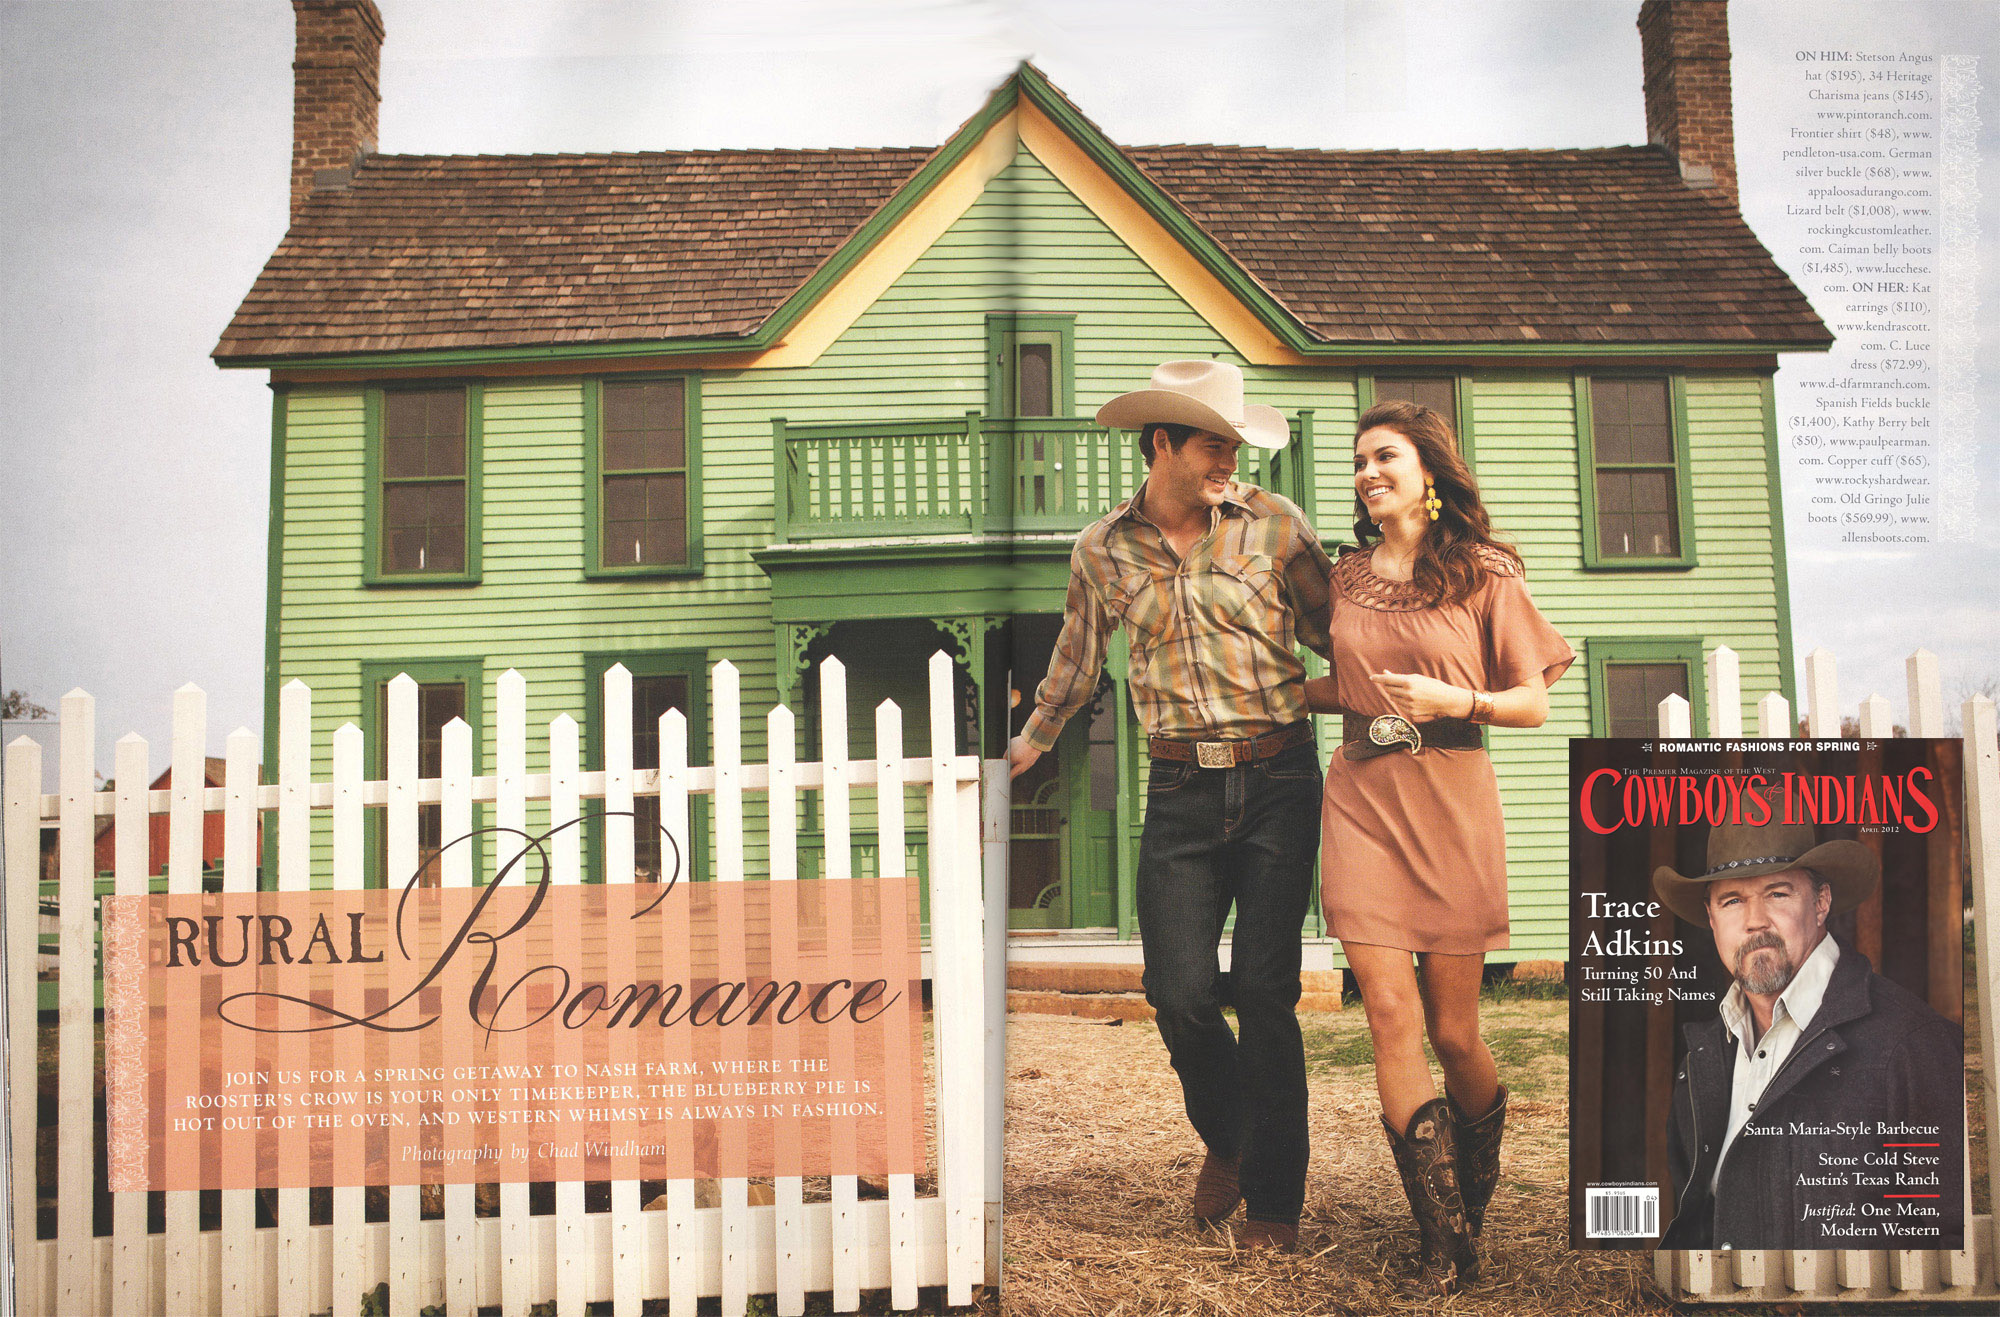 Cowboys & Indians Spring fashion shoot - a couple smiling in front of a green farmhouse